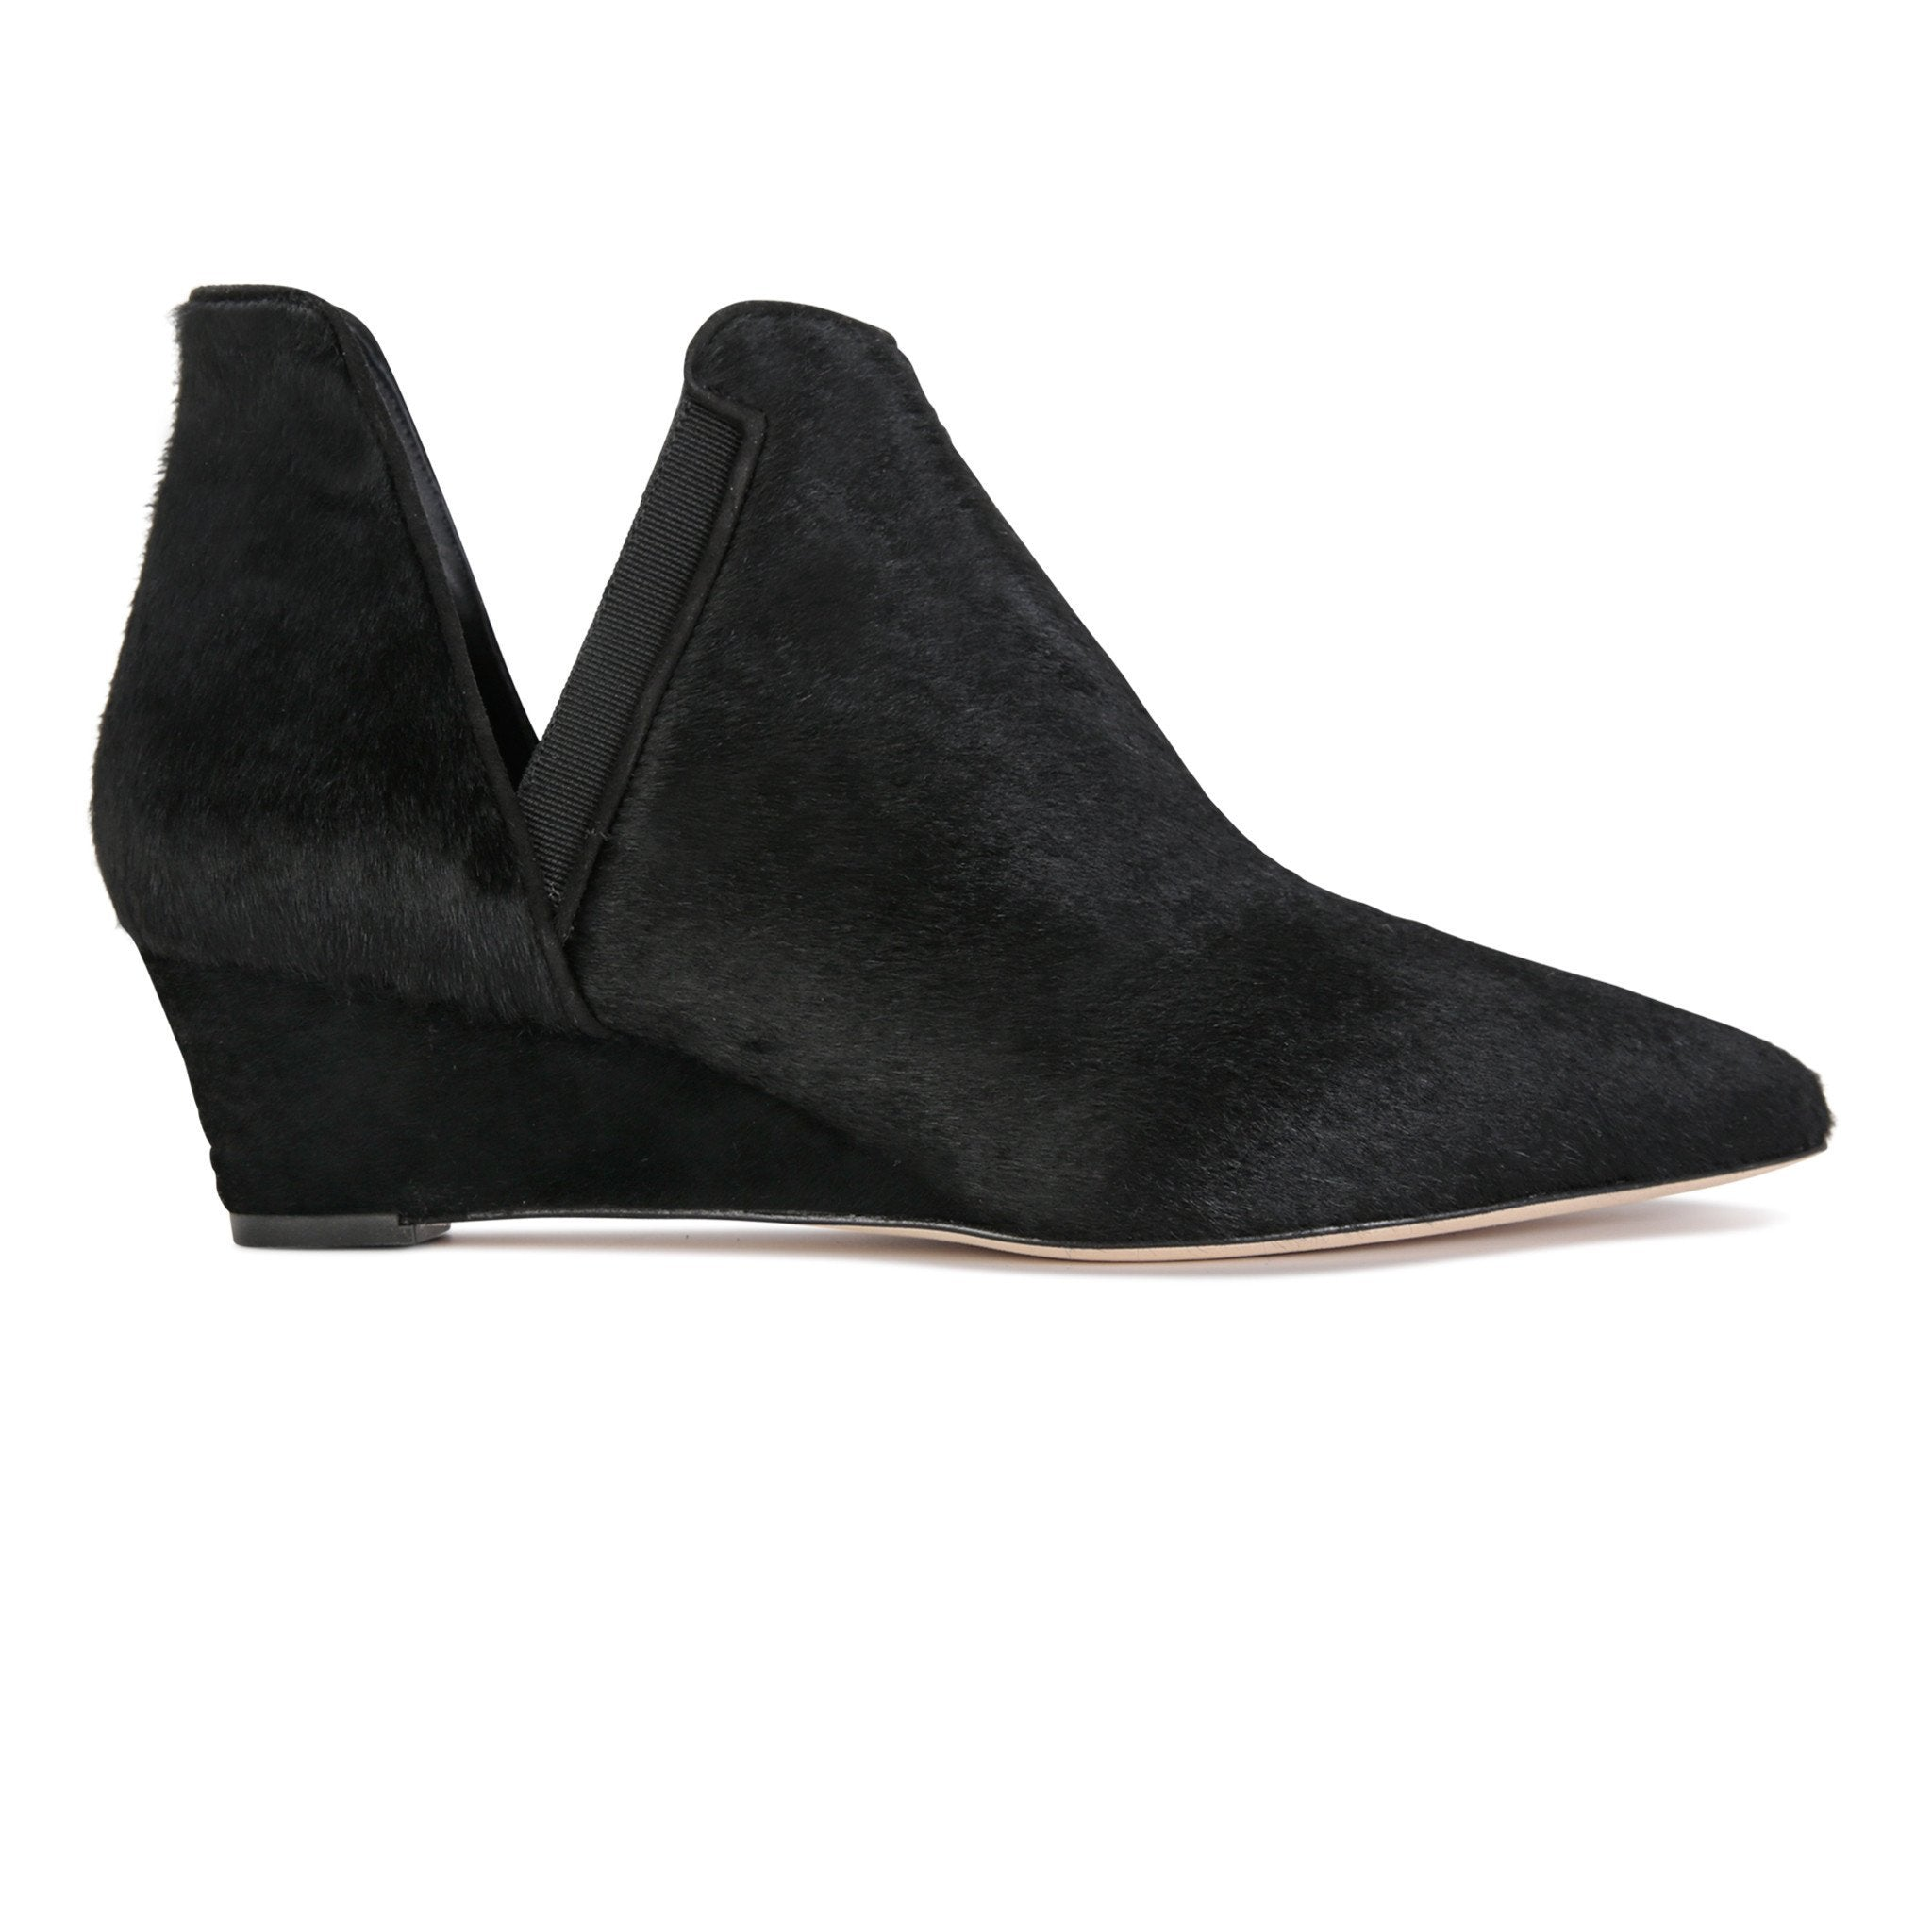 SYRENE - Calf Hair + Grosgrain Nero, VIAJIYU - Women's Hand Made Sustainable Luxury Shoes. Made in Italy. Made to Order.